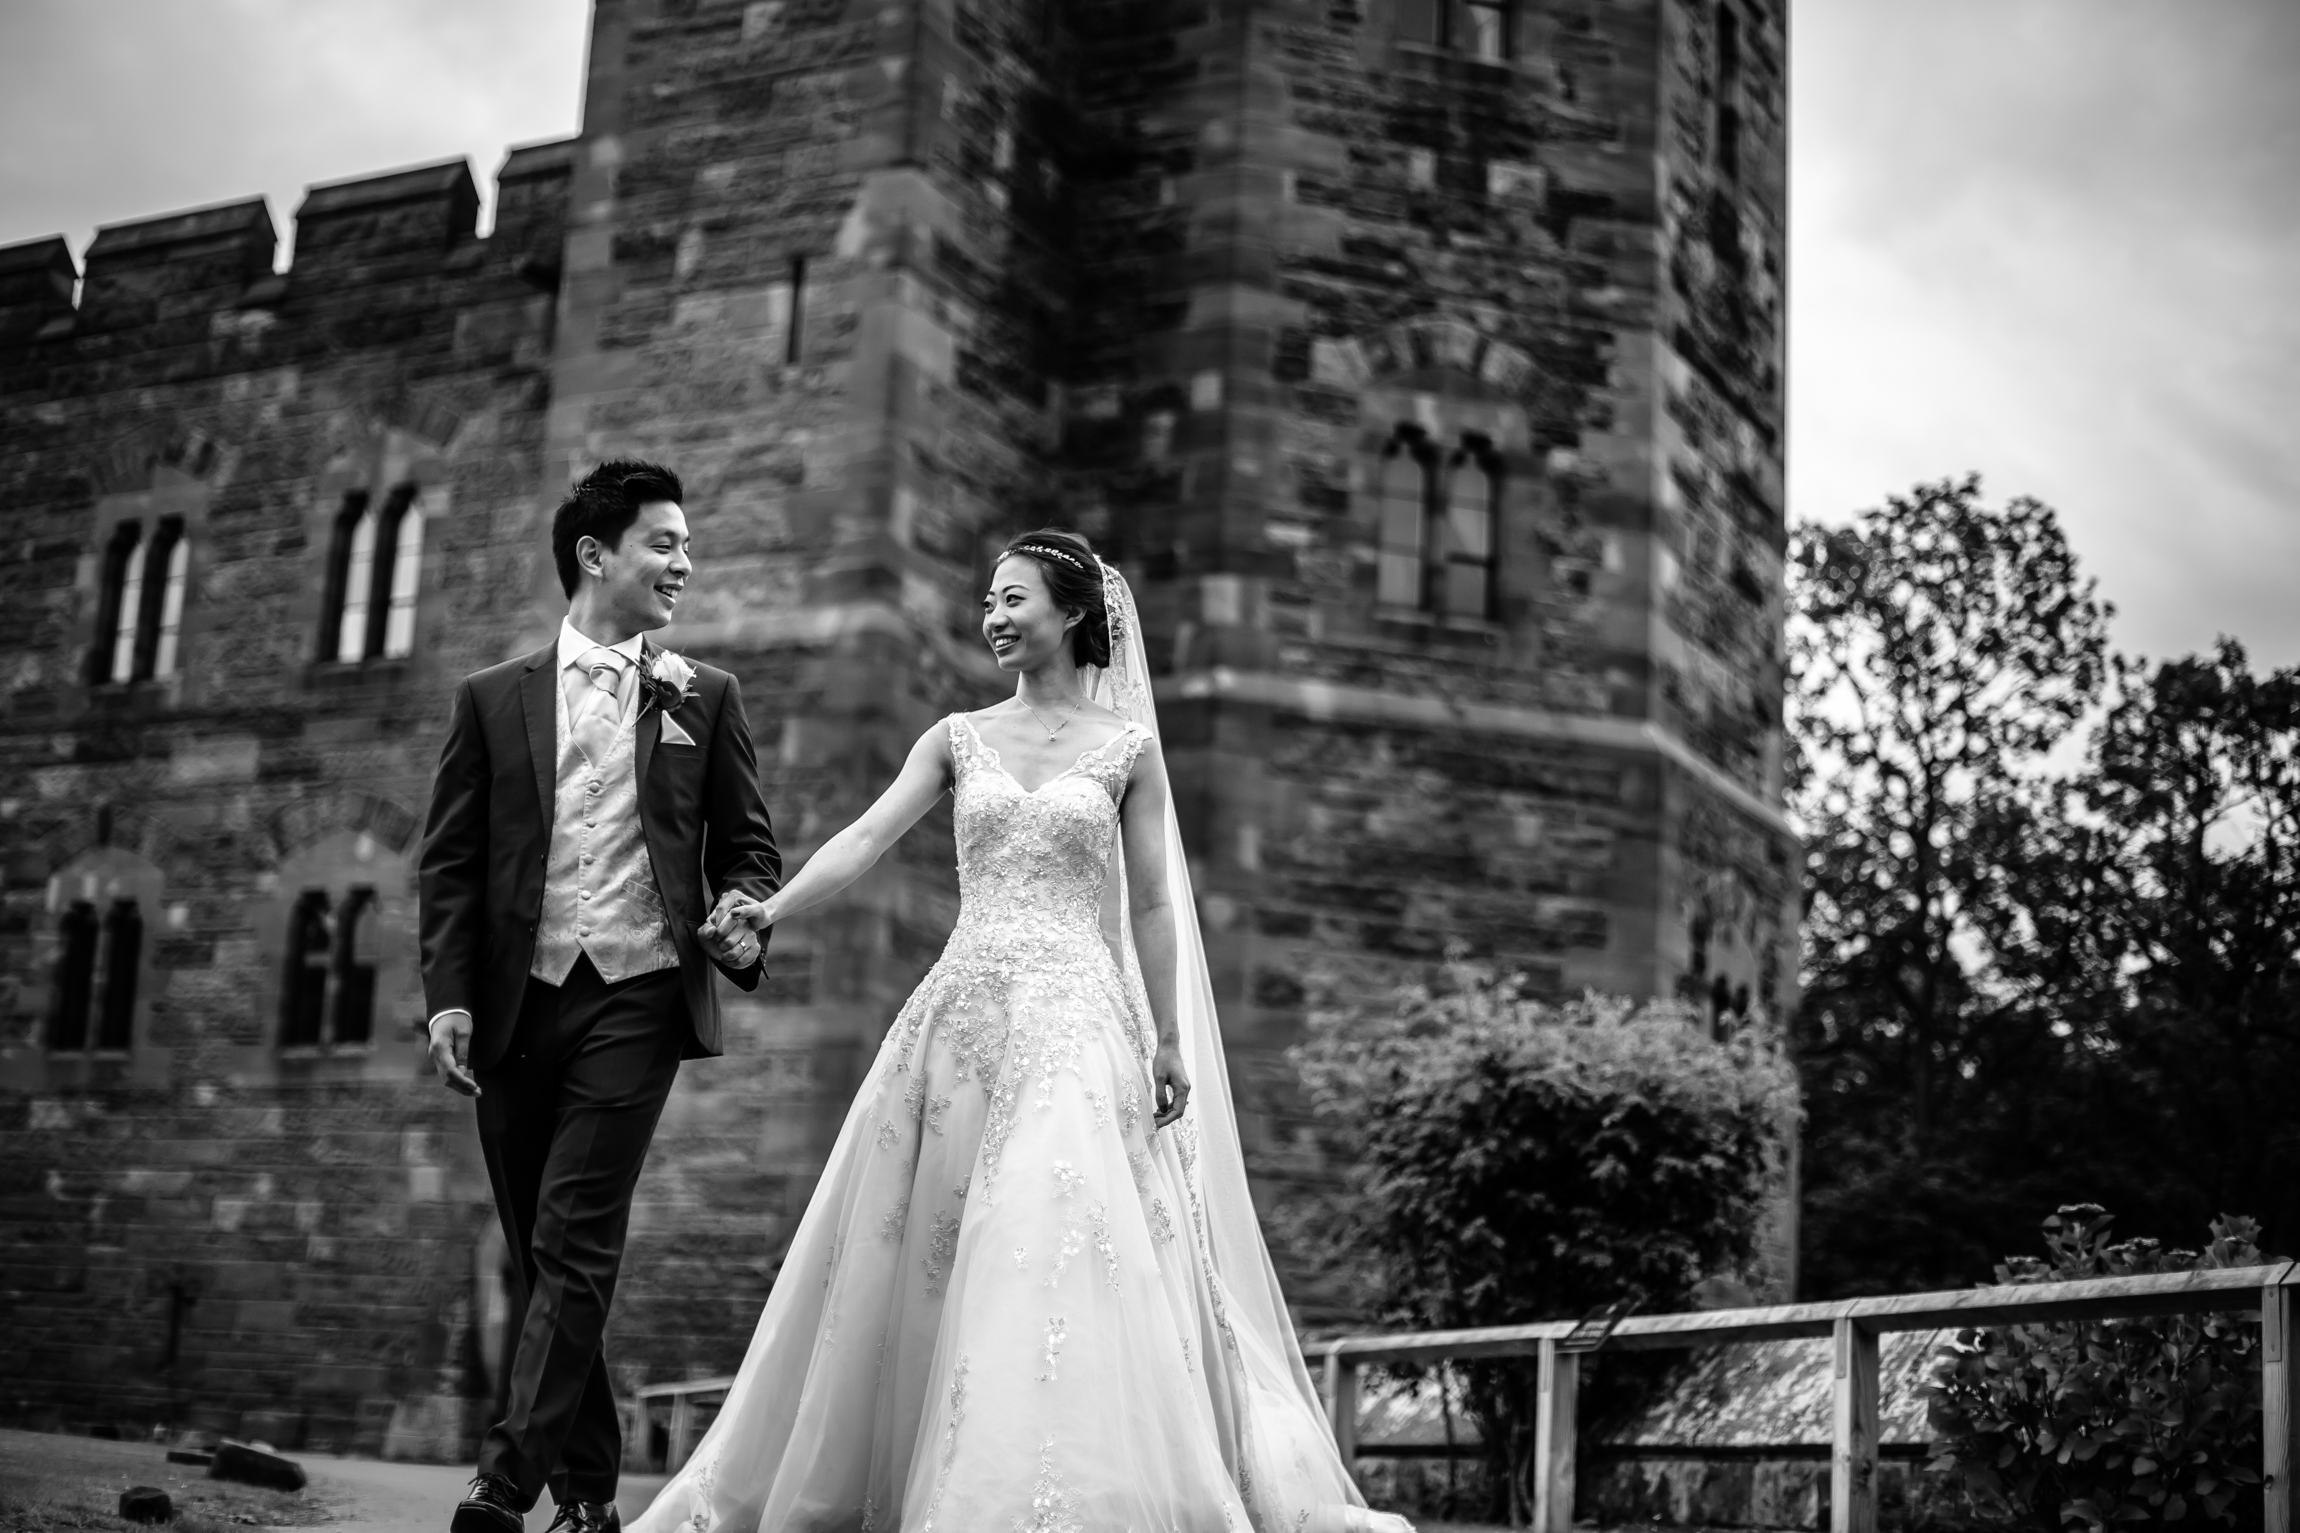 Sonia & Vincent - Sansom Photography Peckforton Castle Wedding Photography-66